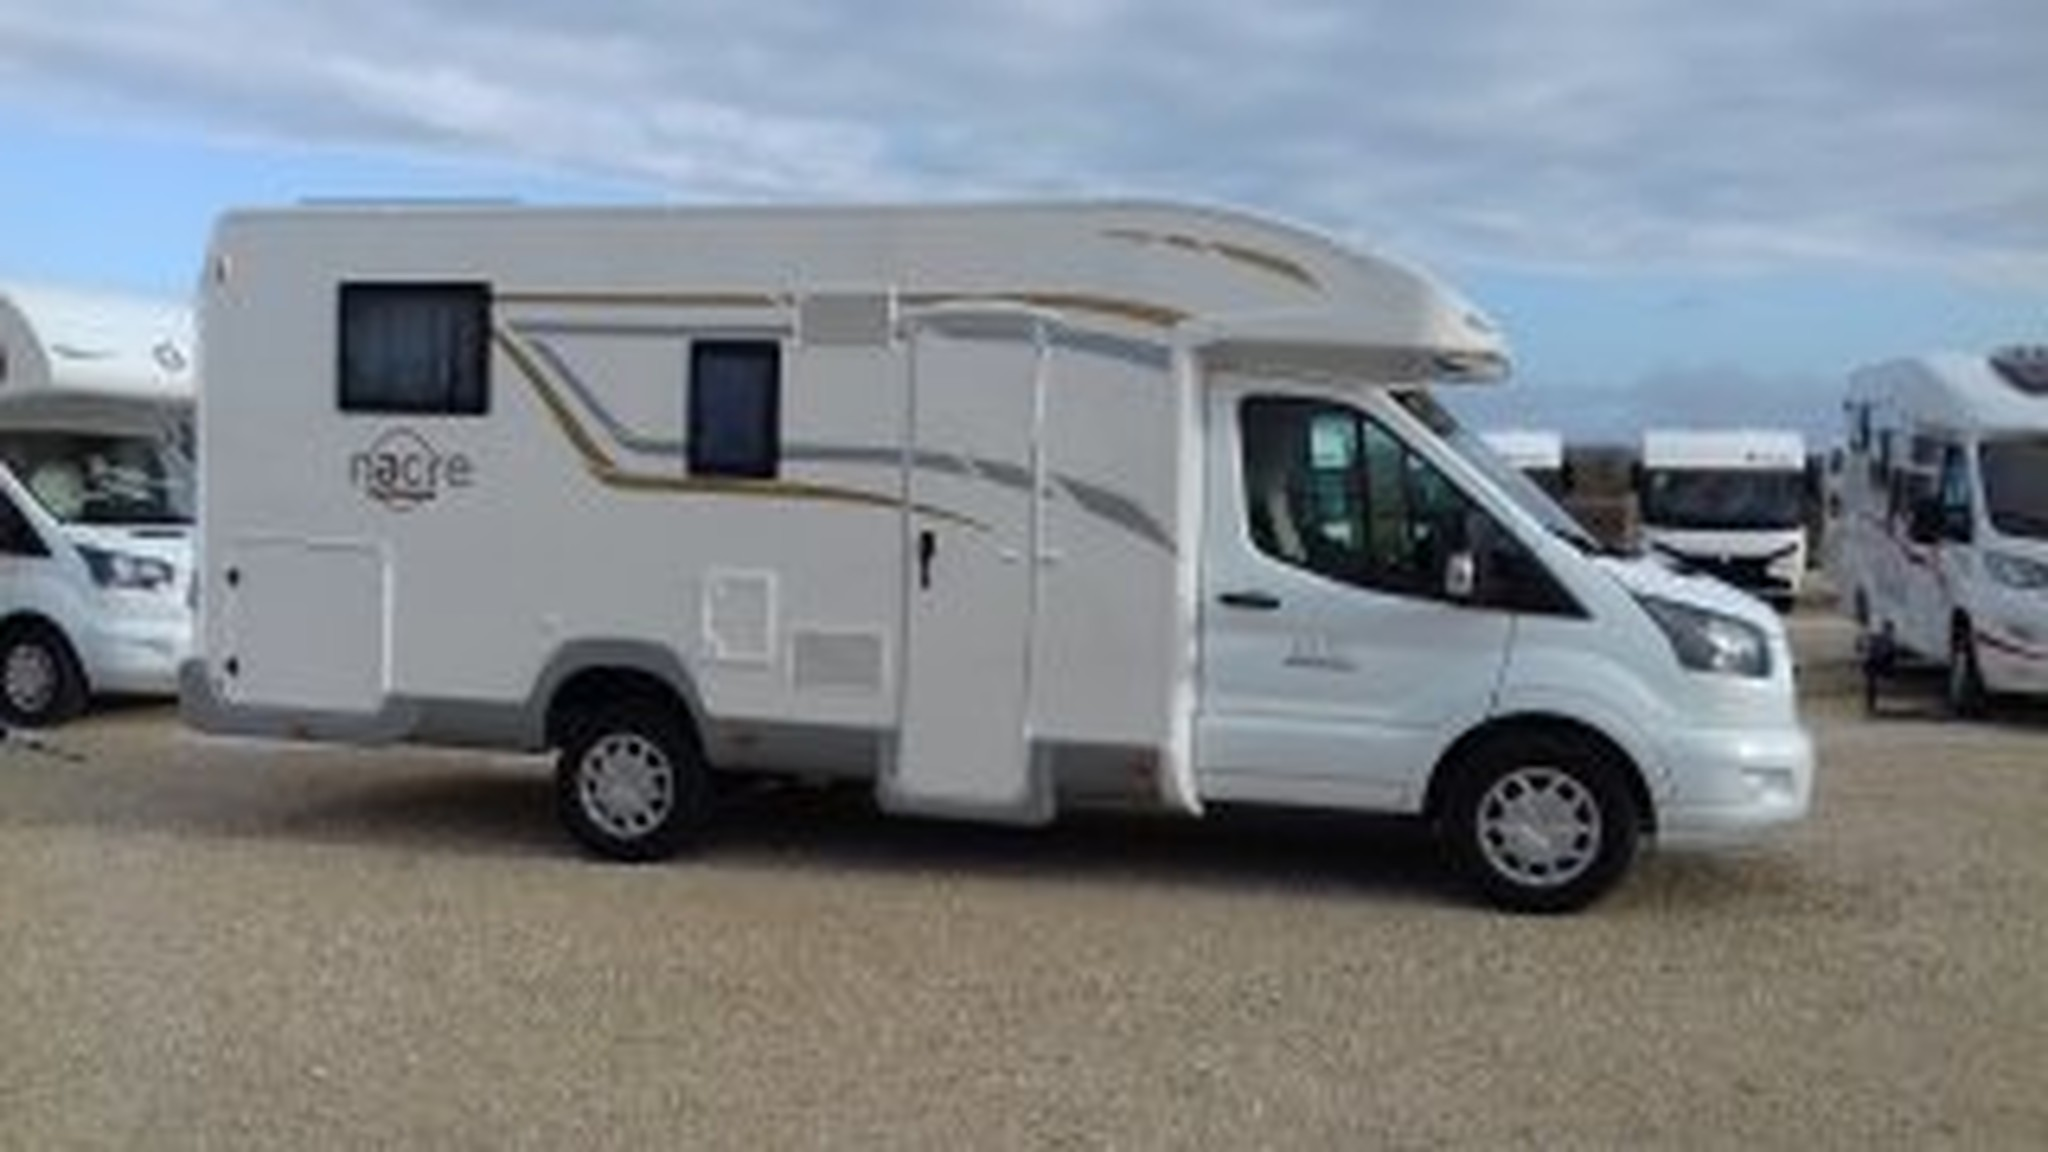 Camping-car CI Nacre 63 Xt Special Edition